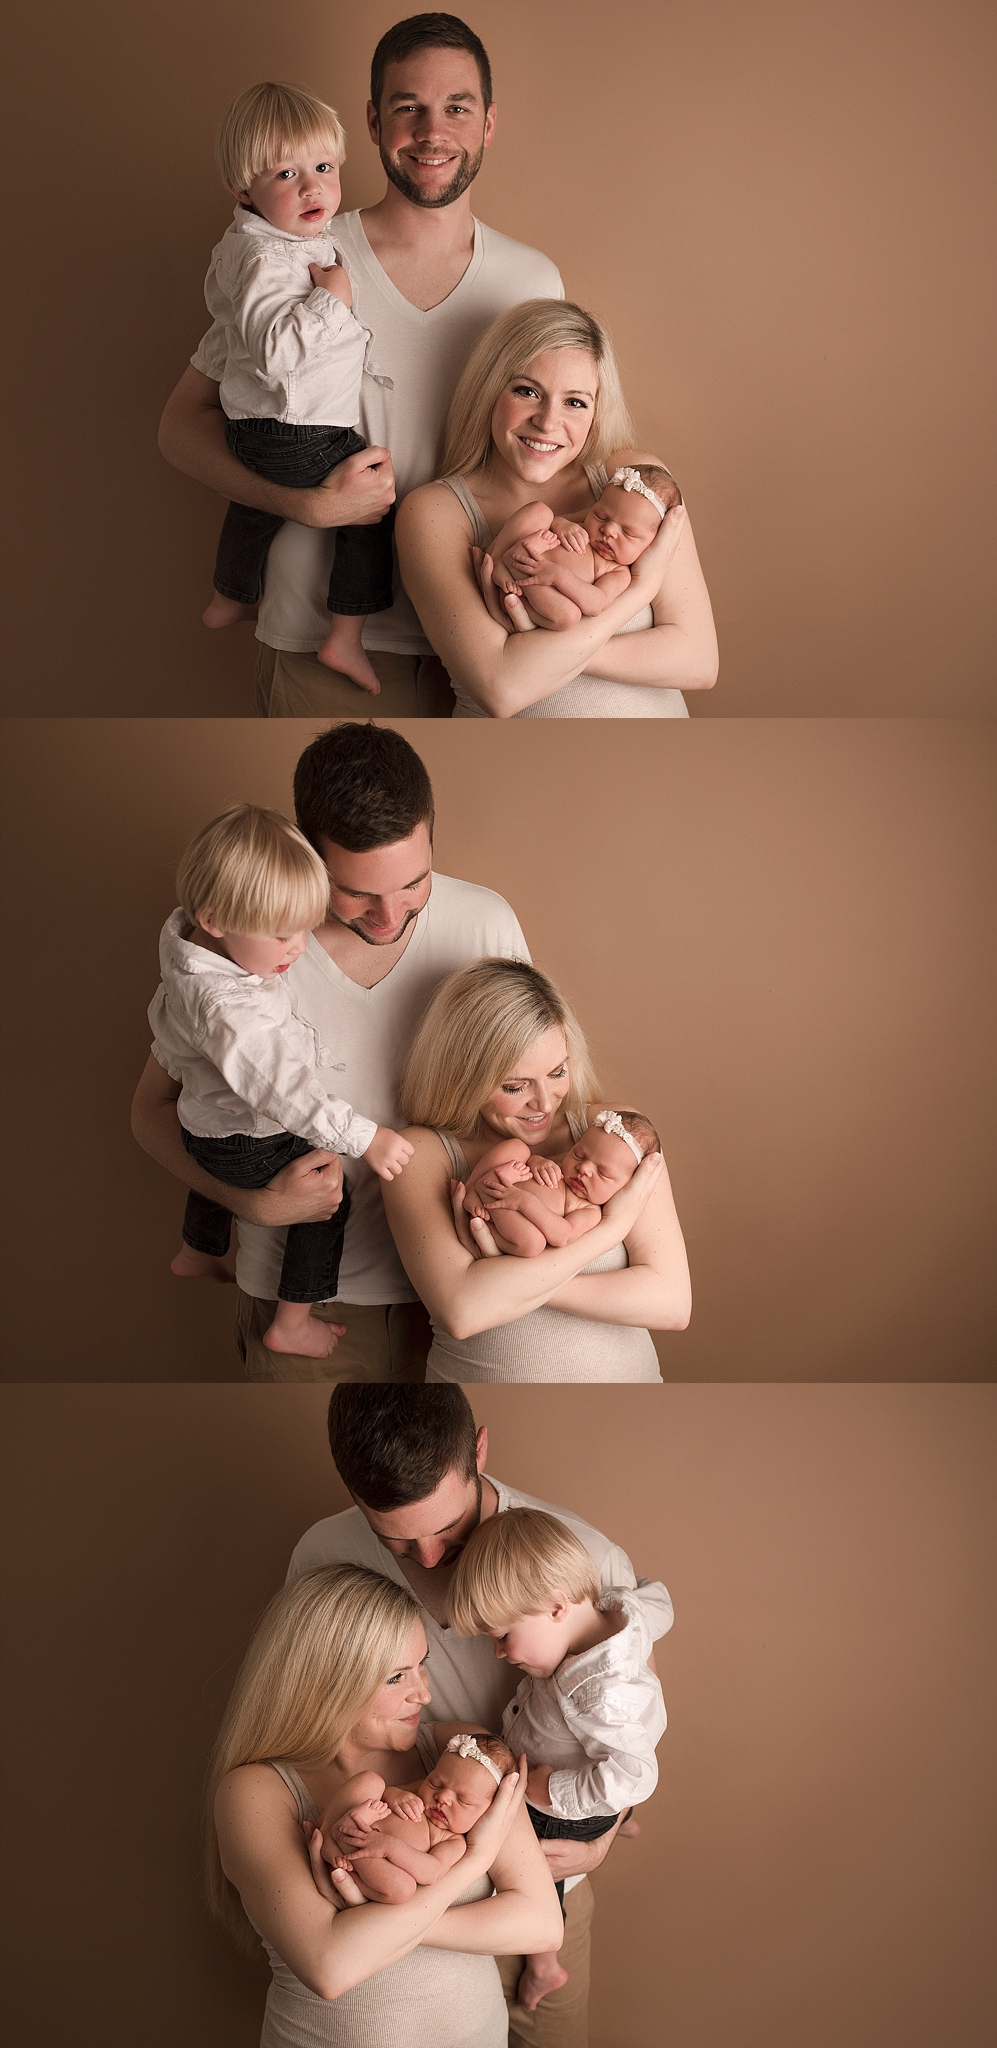 Newborn family posing ideas